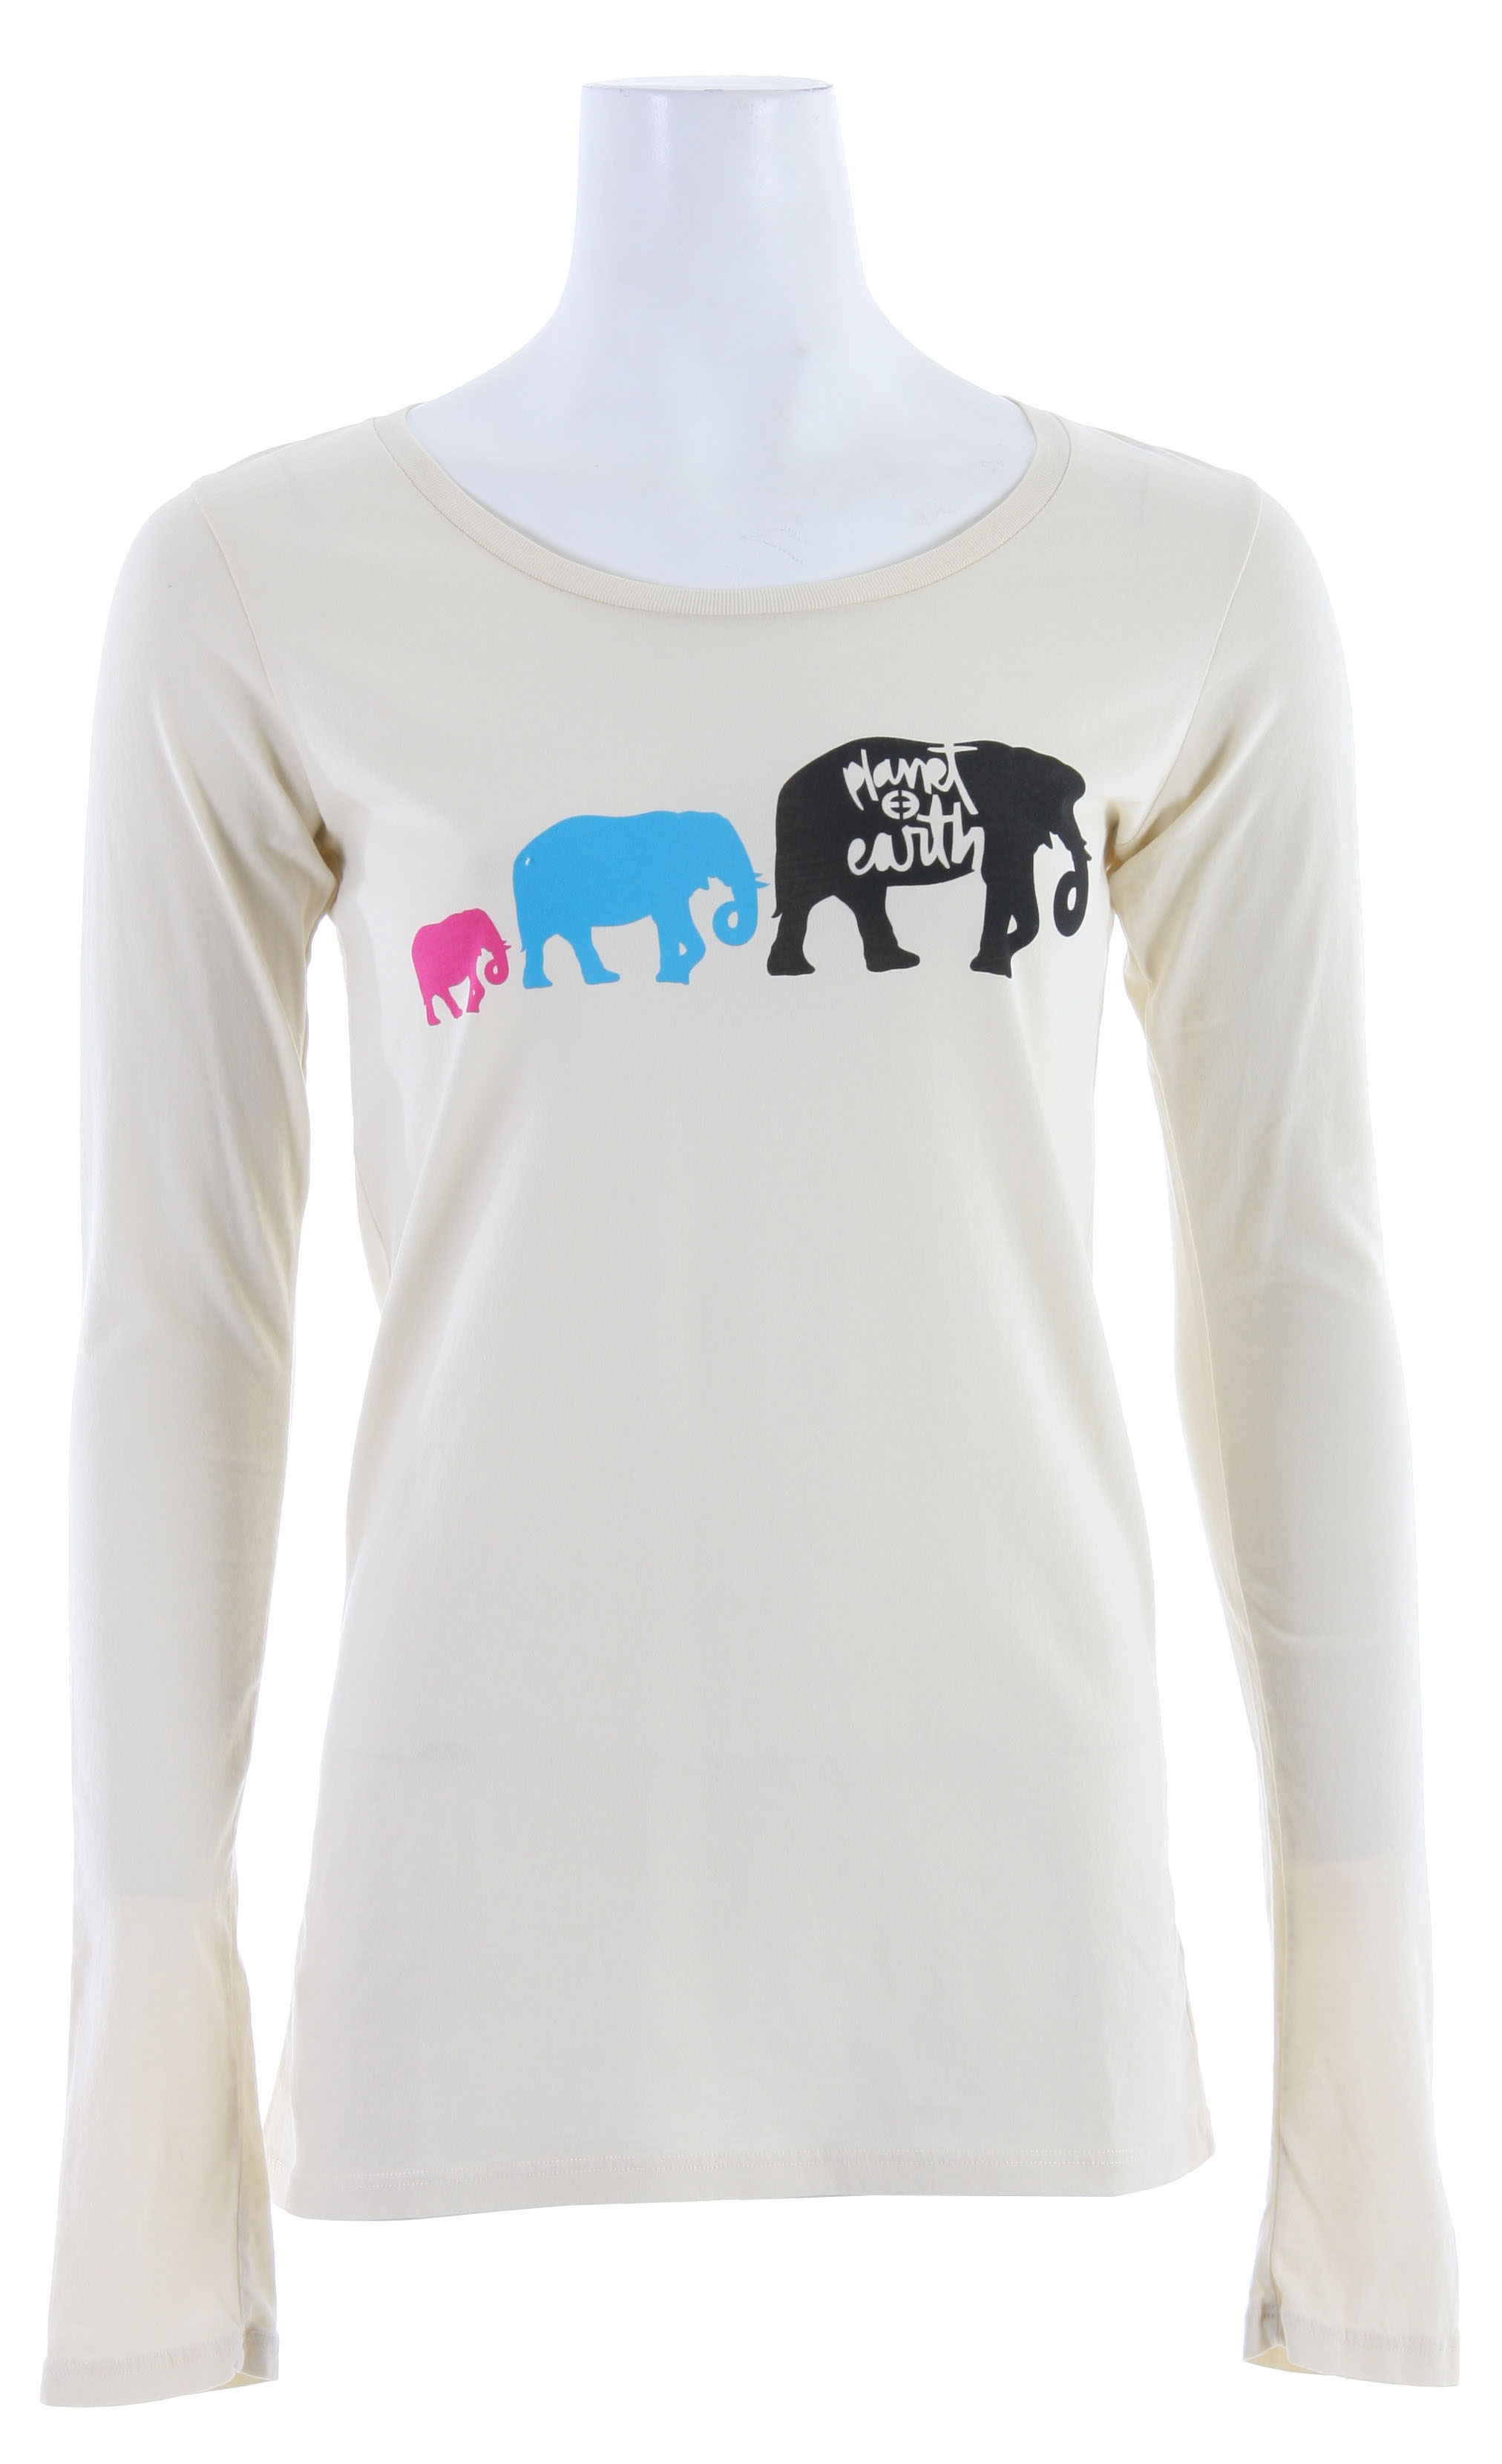 The Planet Earth Elie L/S T-Shirts are 51% organic cotton blended with 49% virgin cotton and embellished with formaldehyde-free inks and dyes for an environmentally friendly finished product. - $14.25